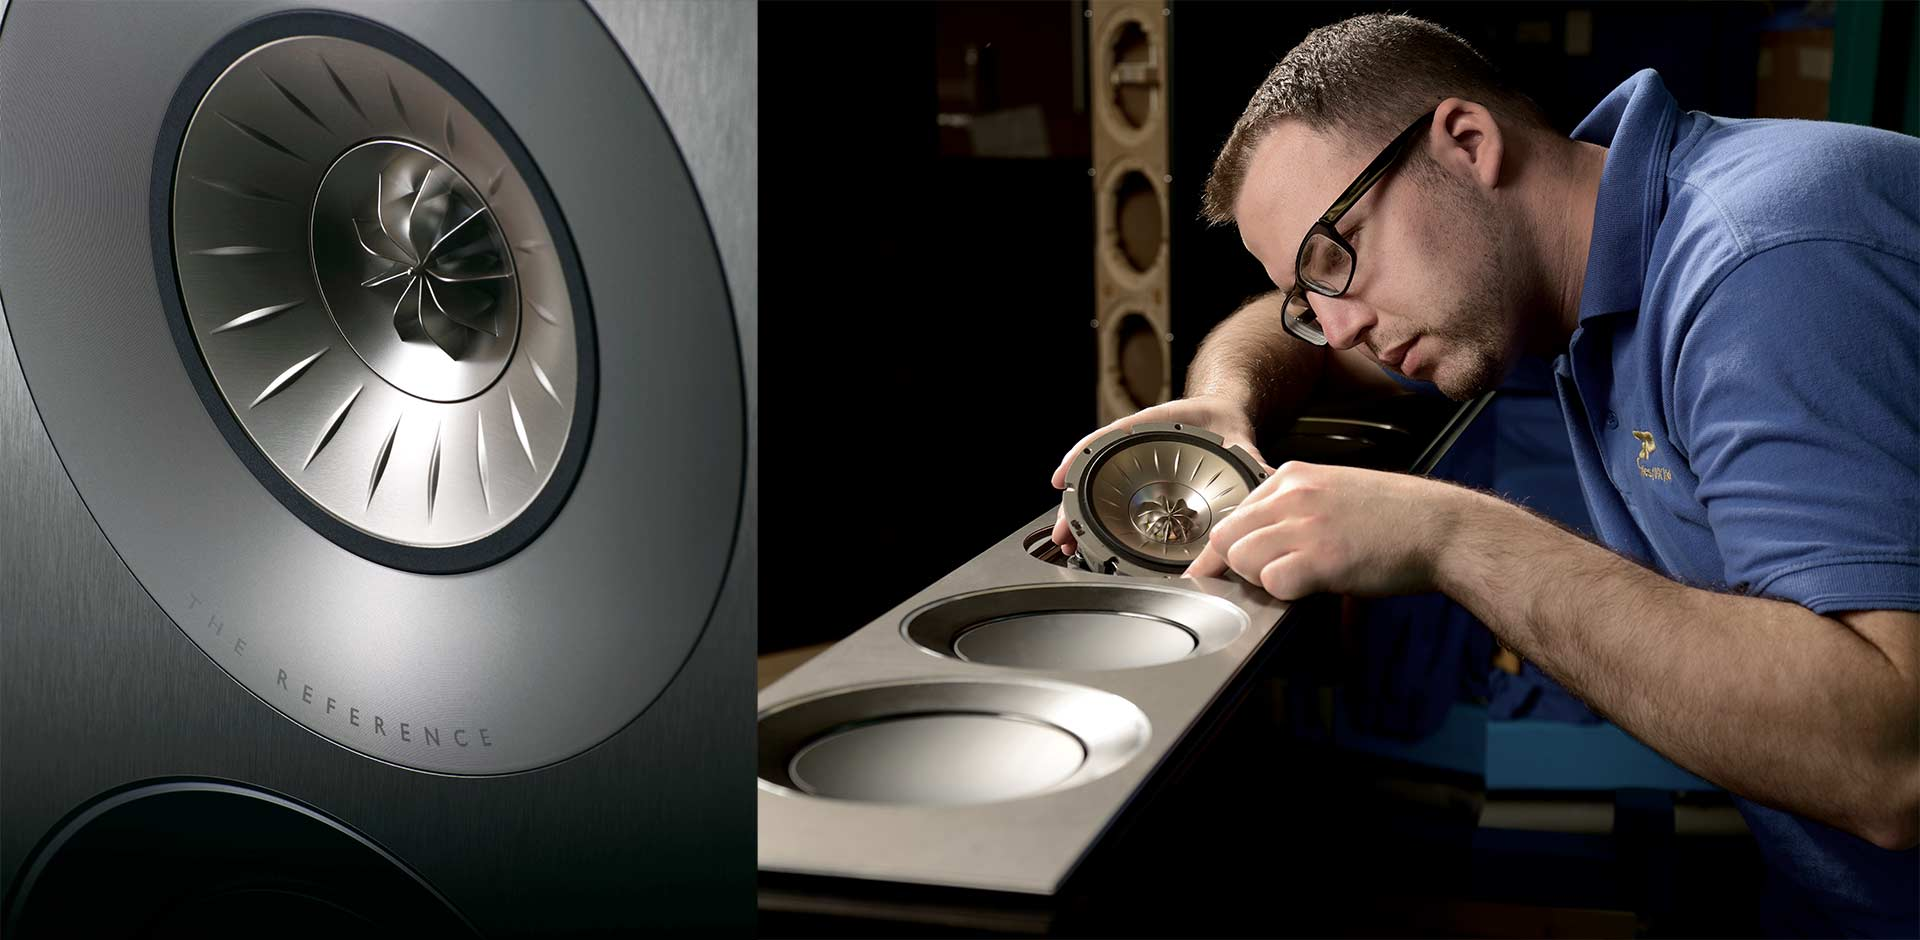 KEF Reference series speakers are hand made in the United Kingdom